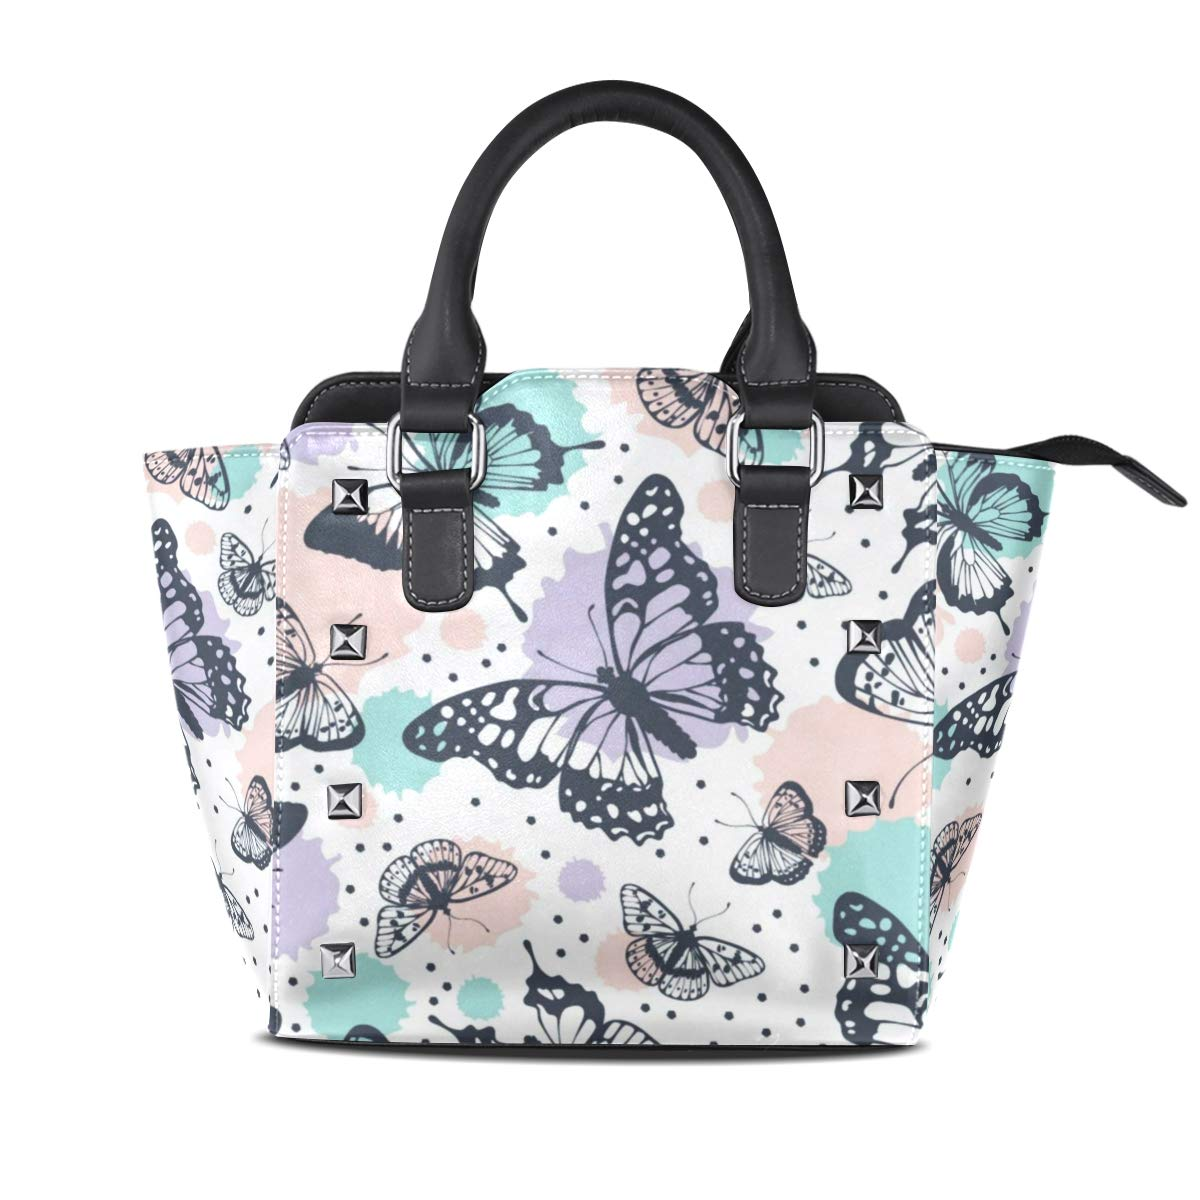 Design1 Handbag colorful Butterfly Genuine Leather Tote Rivet Bag Shoulder Strap Top Handle Women